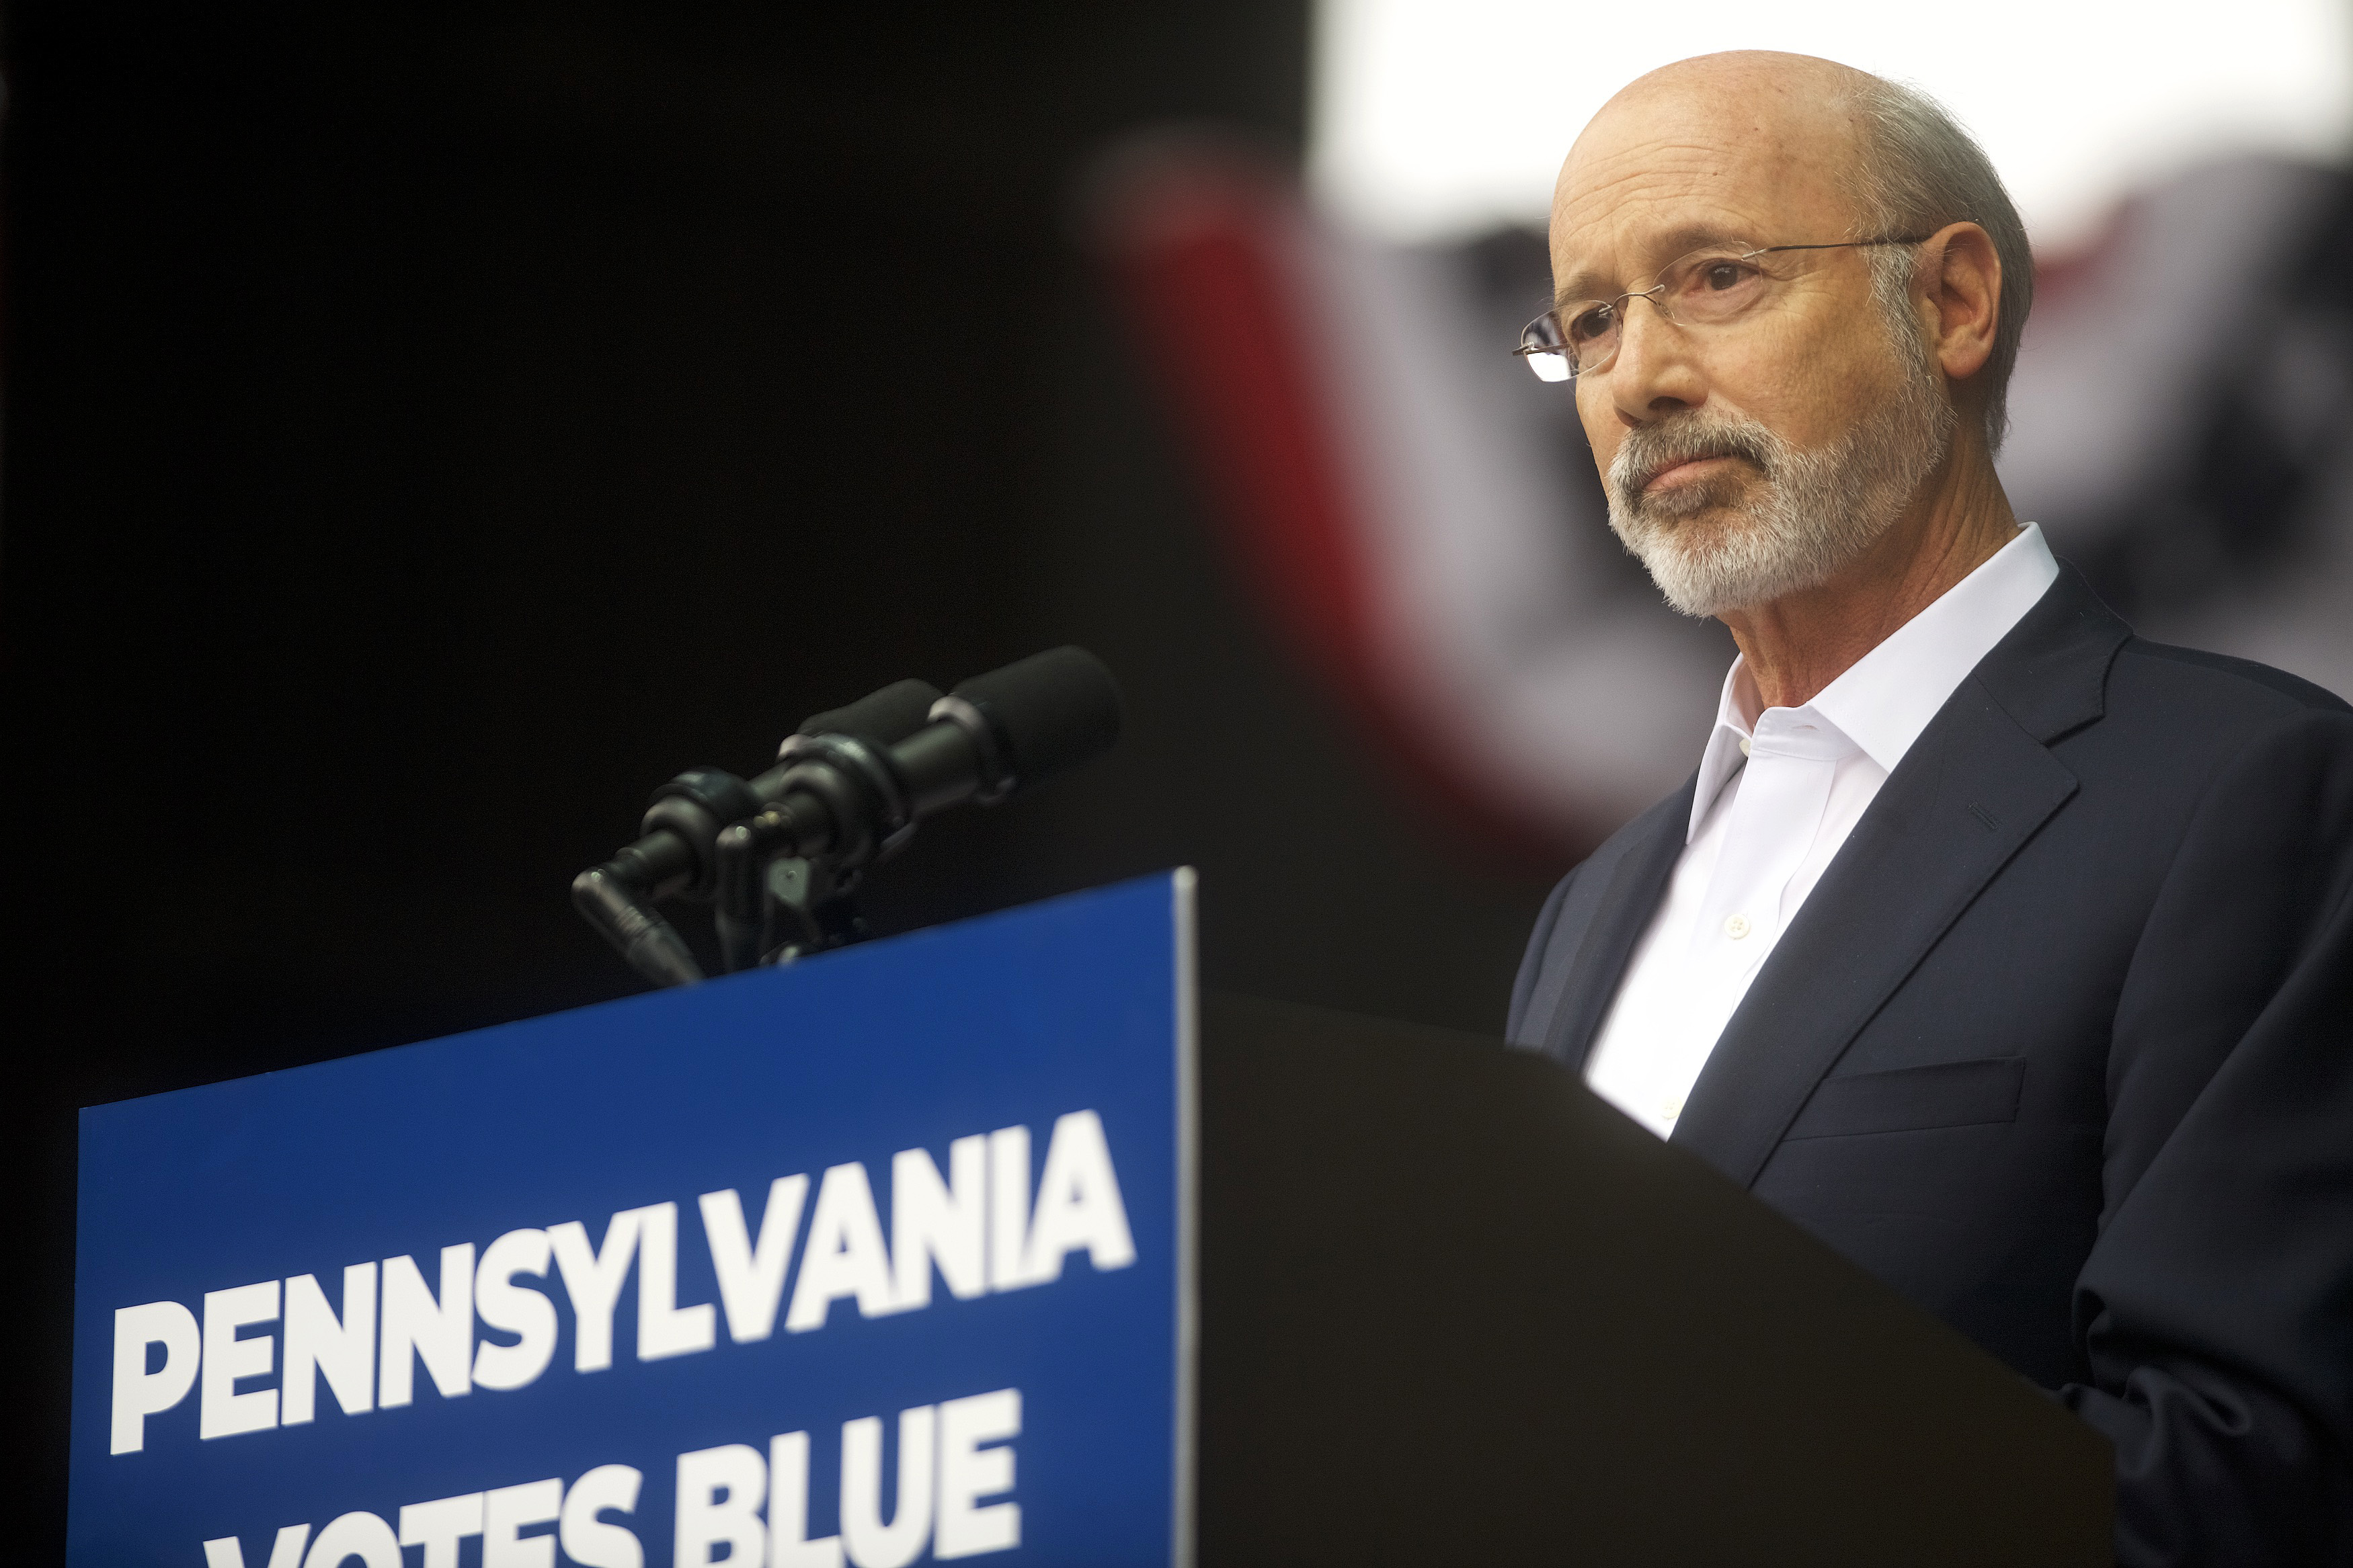 PHILADELPHIA, PA - SEPTEMBER 21: Pennsylvania Governor Tom Wolf addresses supporters before former President Barack Obama speaks during a campaign rally for statewide Democratic candidates on September 21, 2018 in Philadelphia, Pennsylvania. (Photo by Mark Makela/Getty Images)